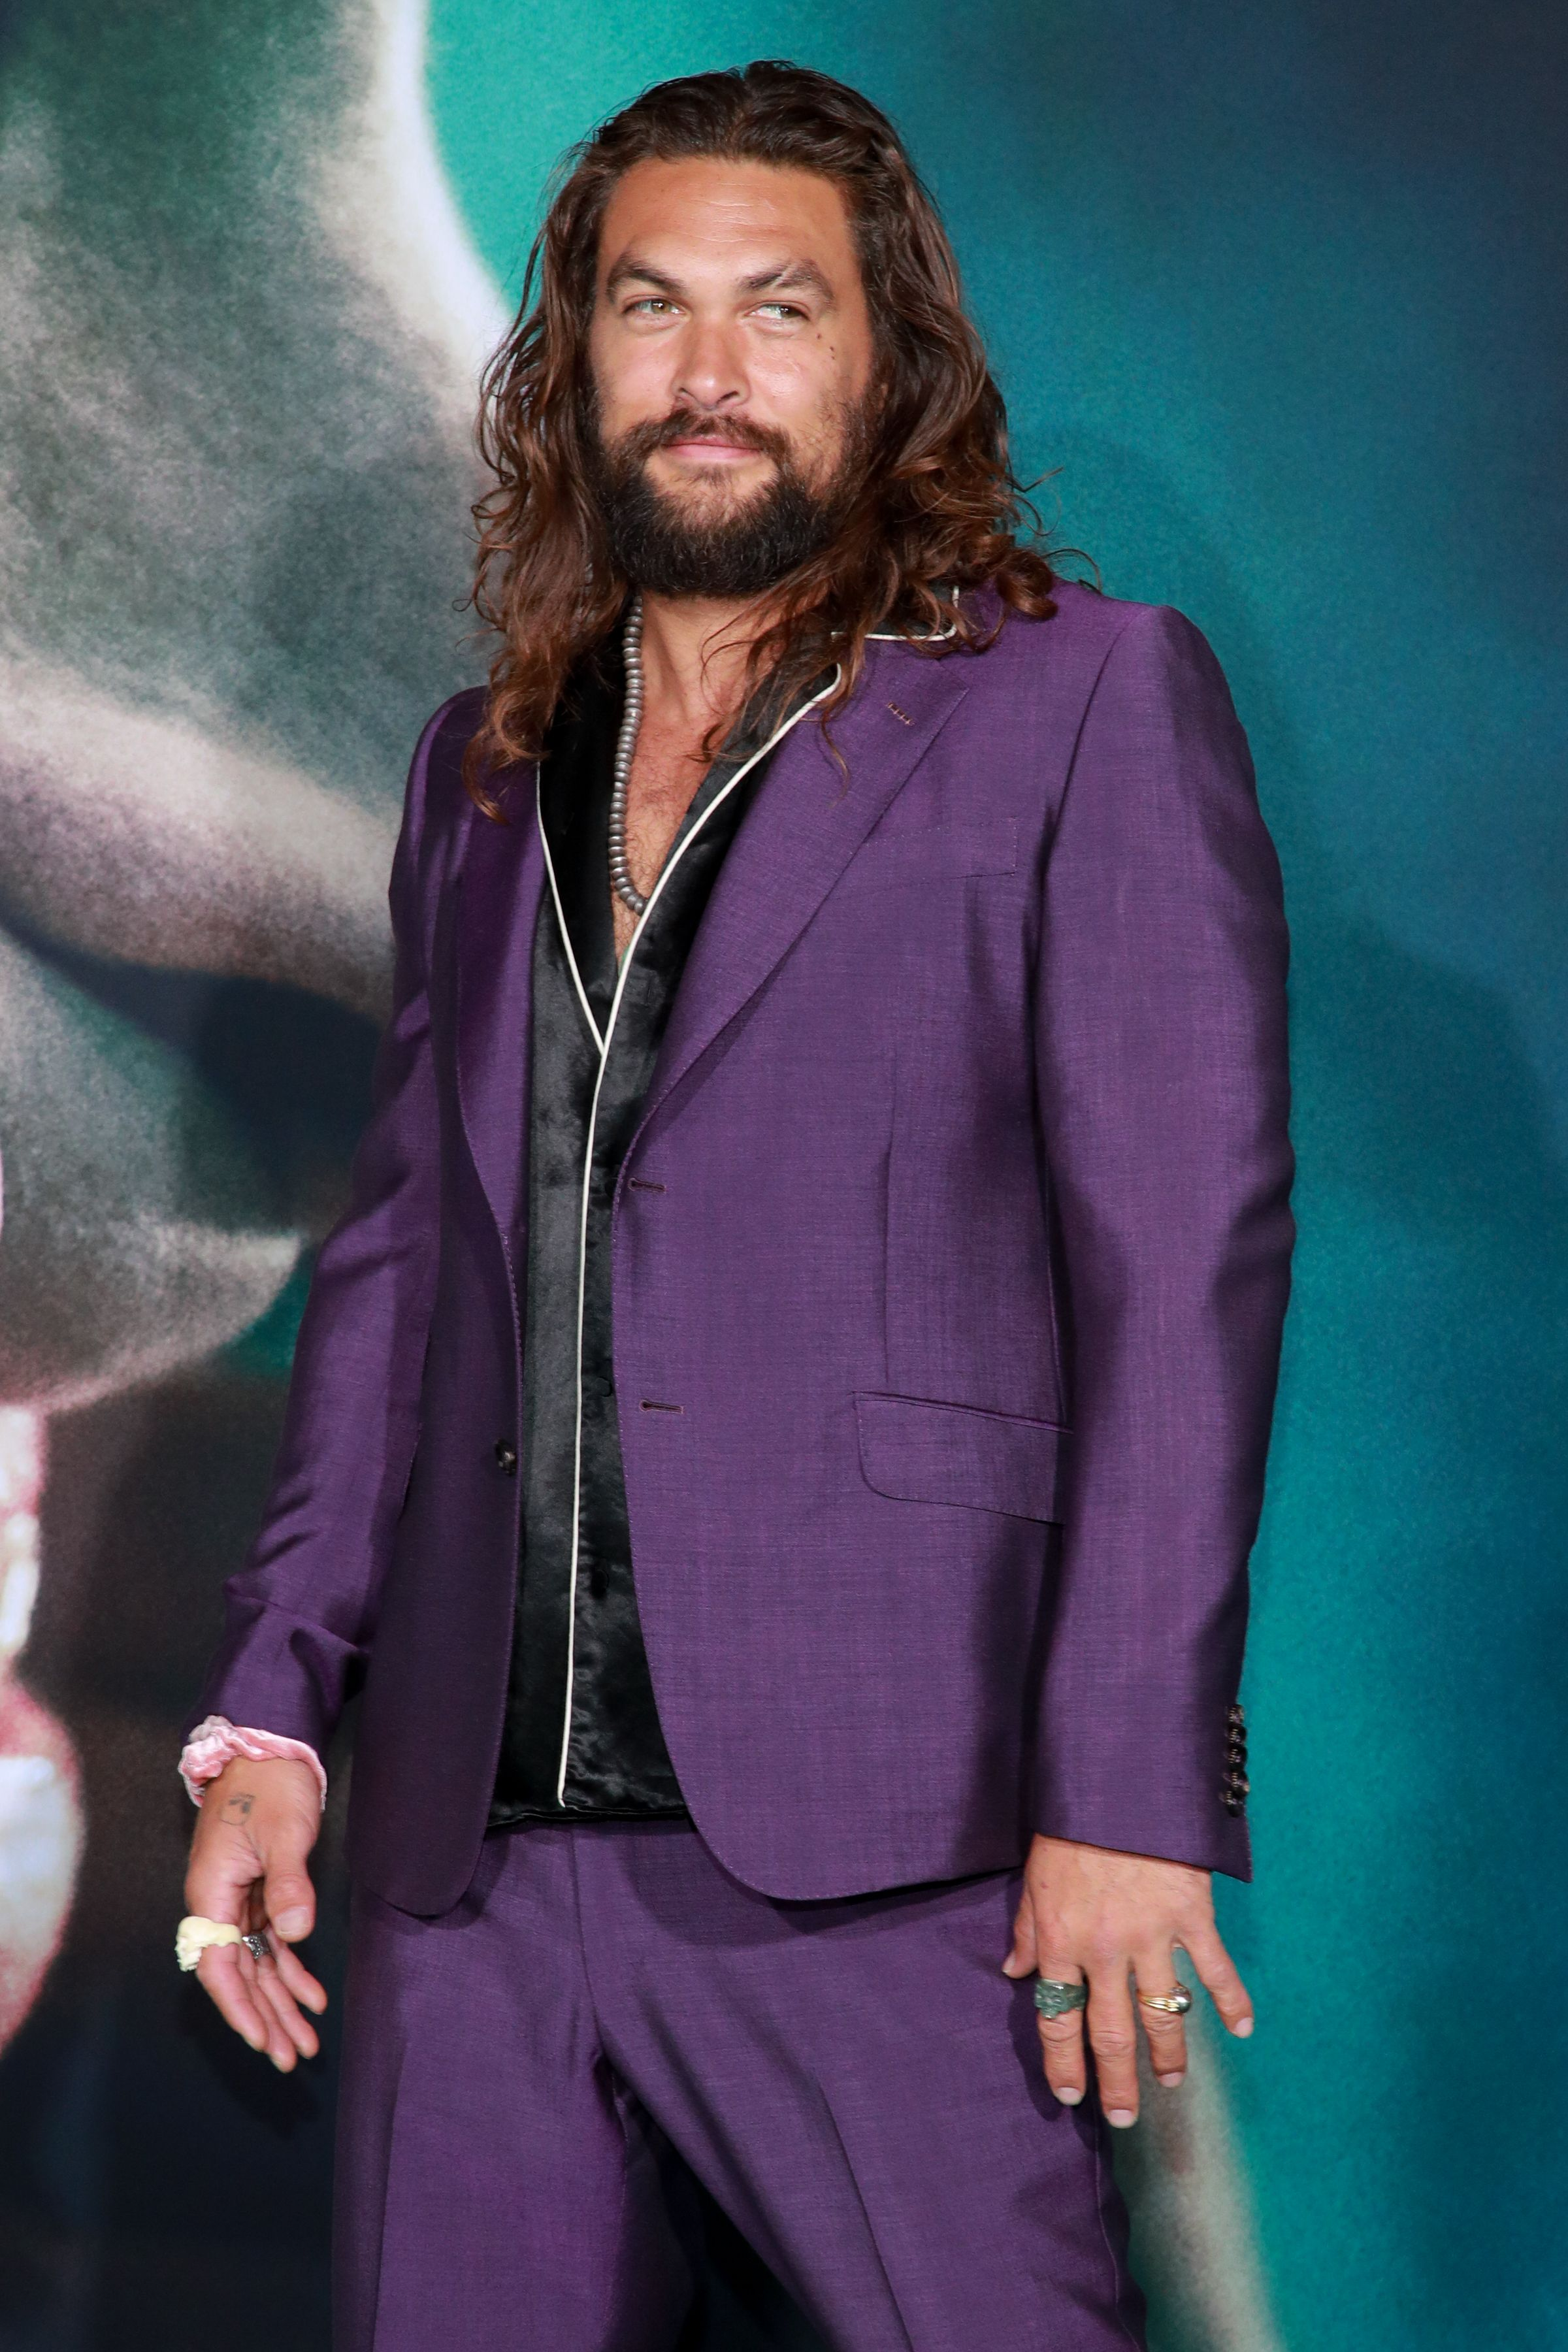 Jason Momoa Is a Better Actor Than He Thinks He Is